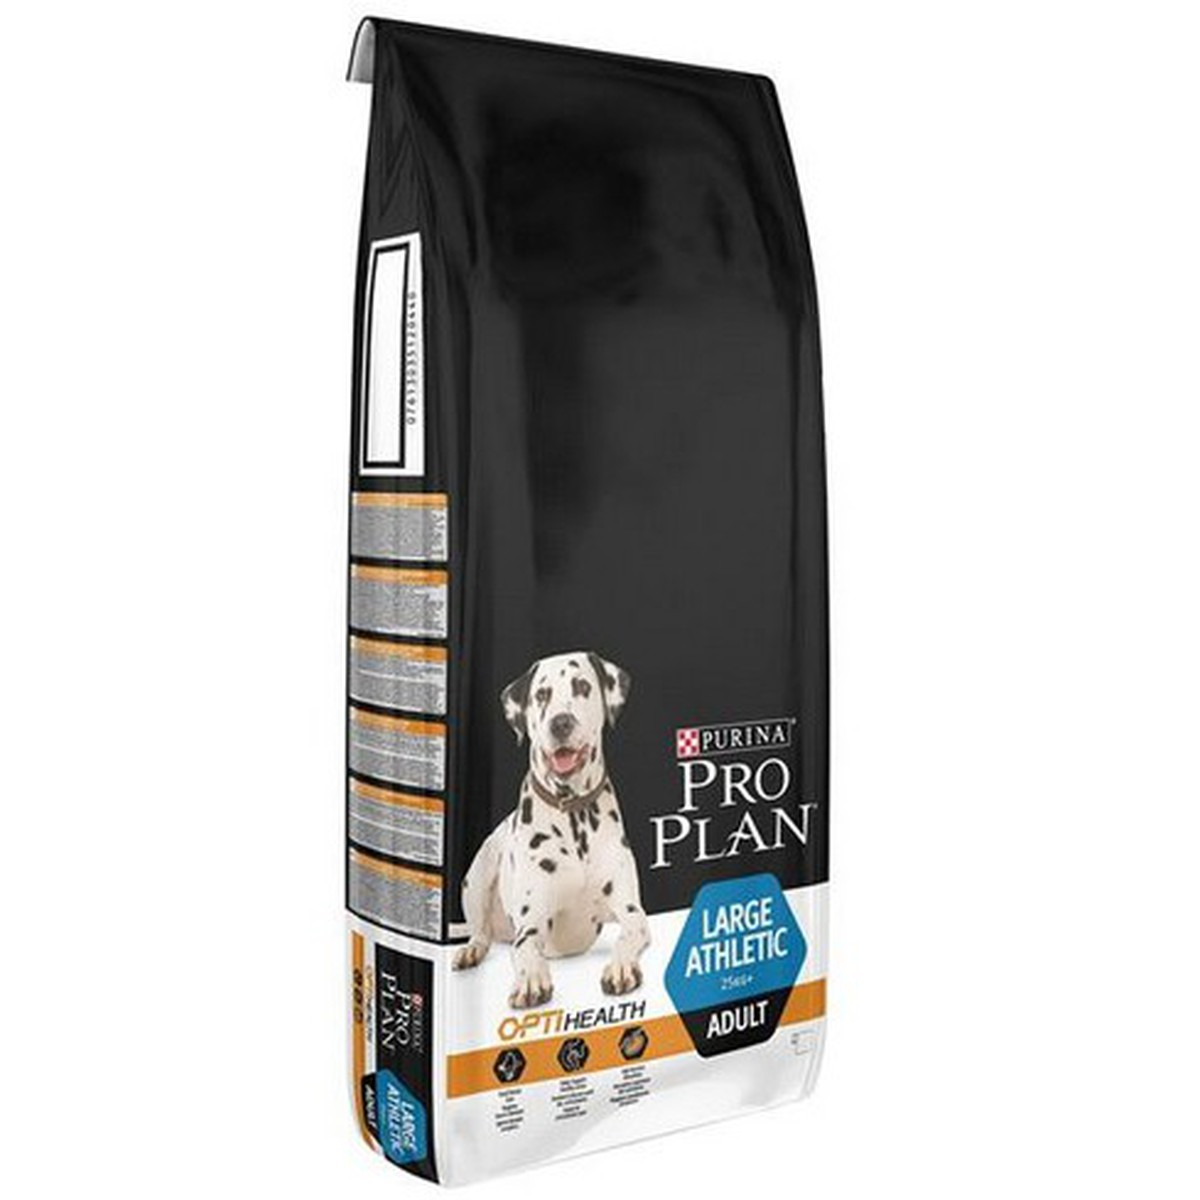 Proplan dog LARGE ATHLETIC ADULT 14kg  14kg